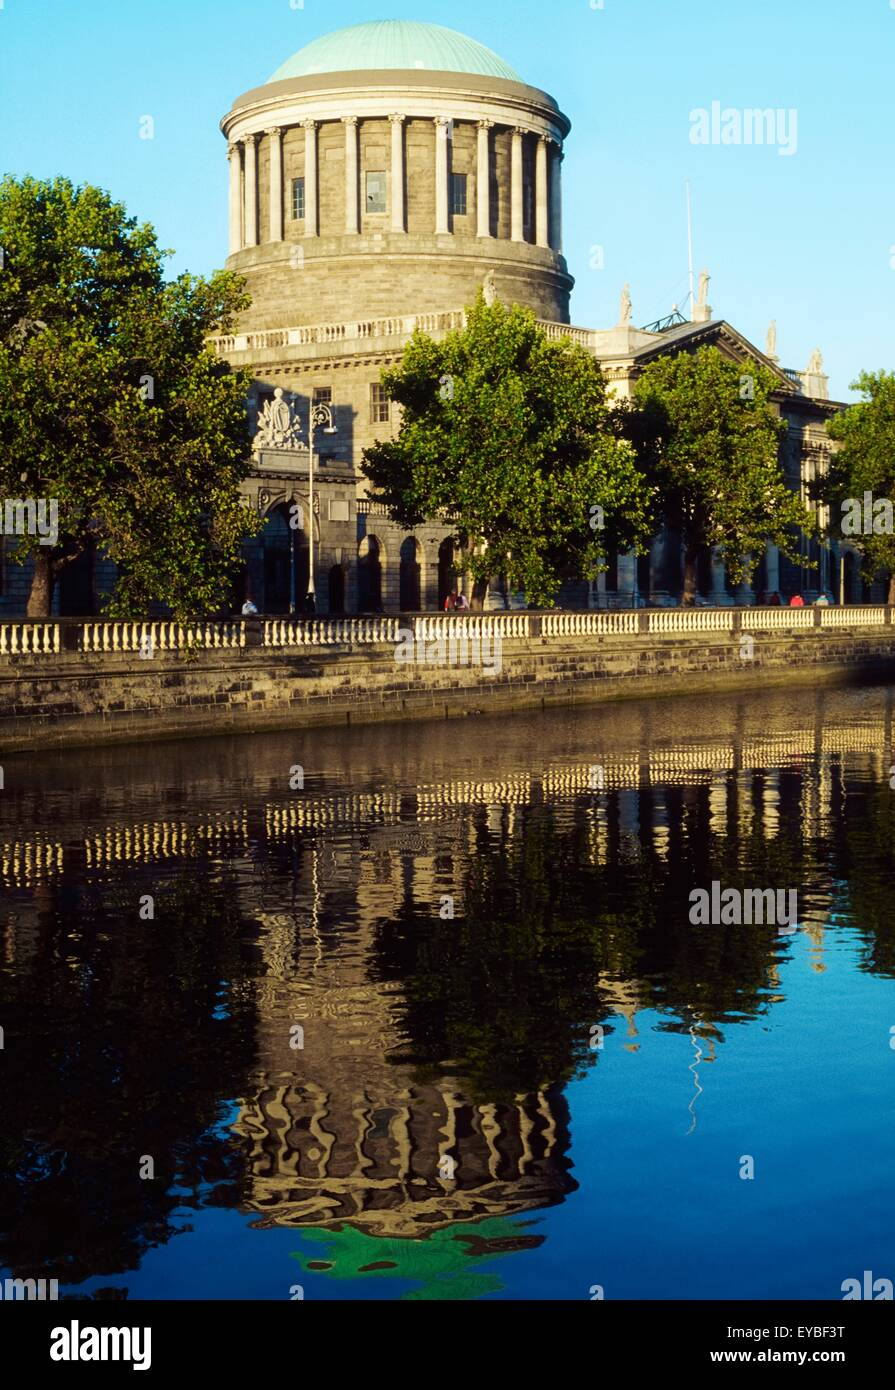 Four Courts, Dublin, Co Dublin, Ireland; Supreme Court In An 18Th Century Building Designed By James Gandon - Stock Image